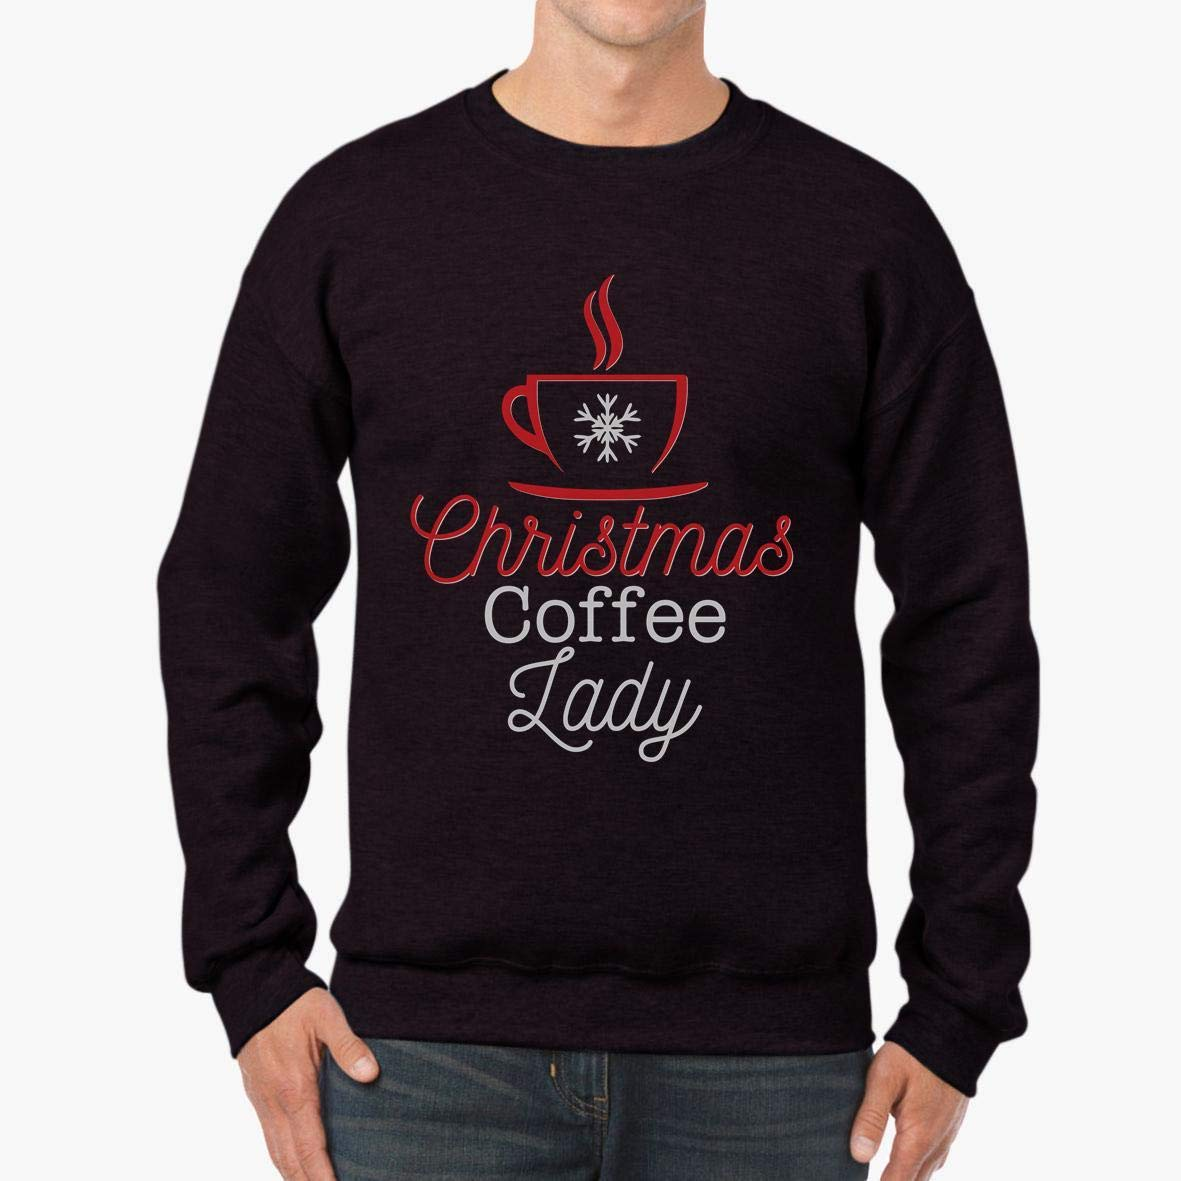 tee Doryti Christmas Coffee Lady Unisex Sweatshirt